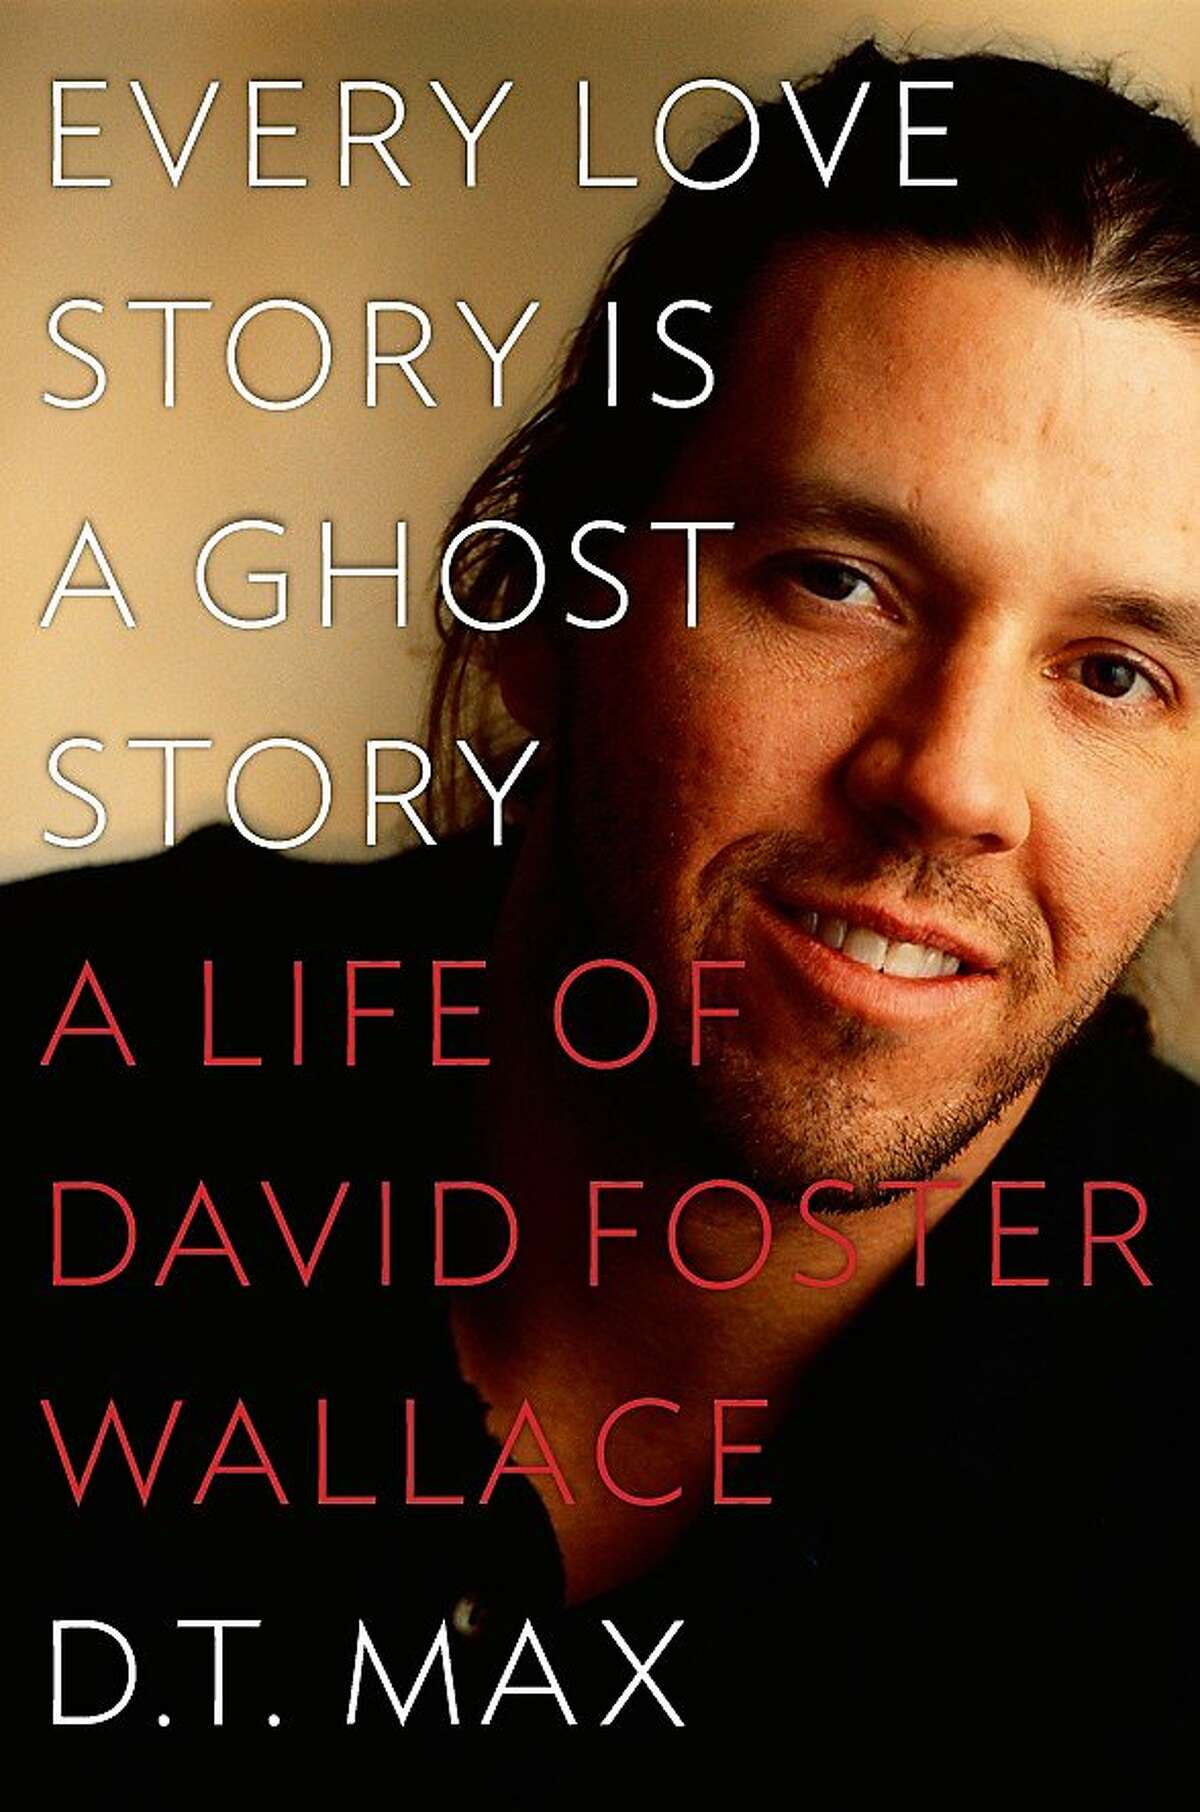 Every Love Story Is a Ghost Story, by D. T. Max